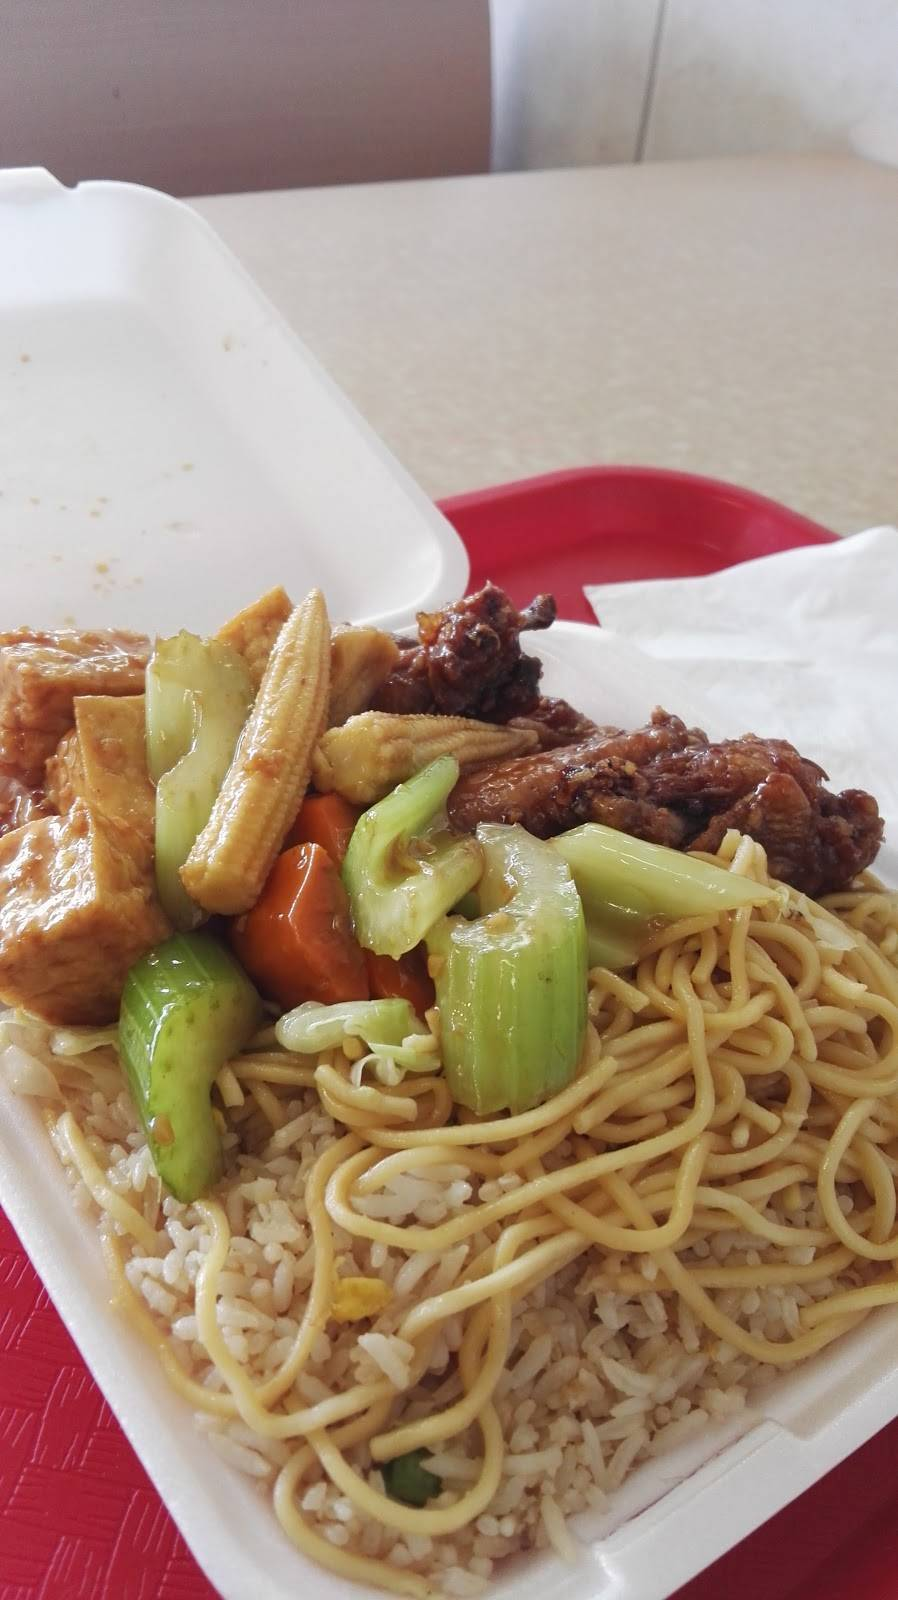 Chinatown Express | restaurant | 252 S Western Ave, Los Angeles, CA 90004, USA | 2133831559 OR +1 213-383-1559